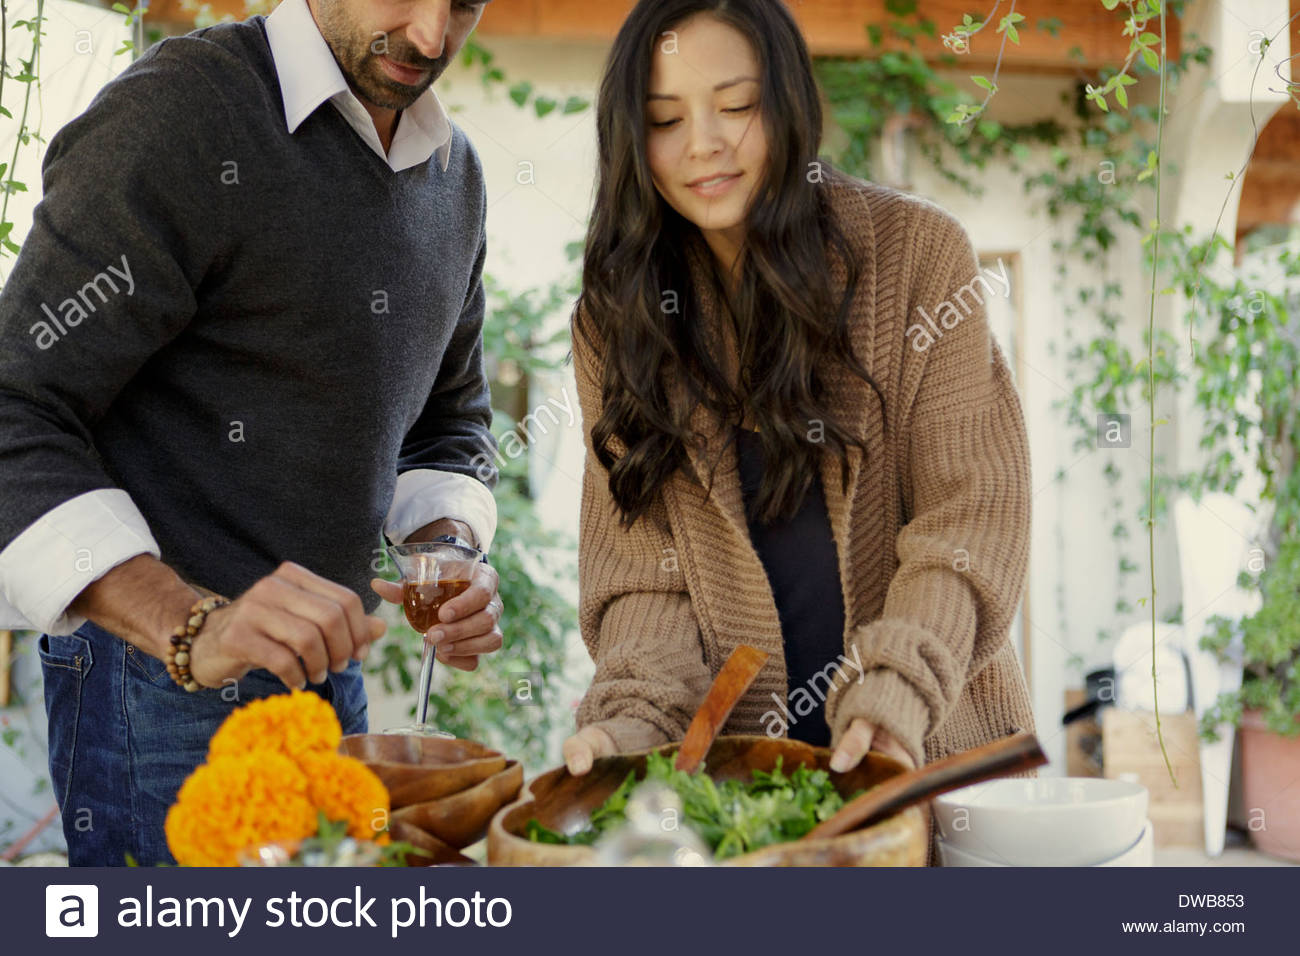 Friends selecting food at garden party - Stock Image